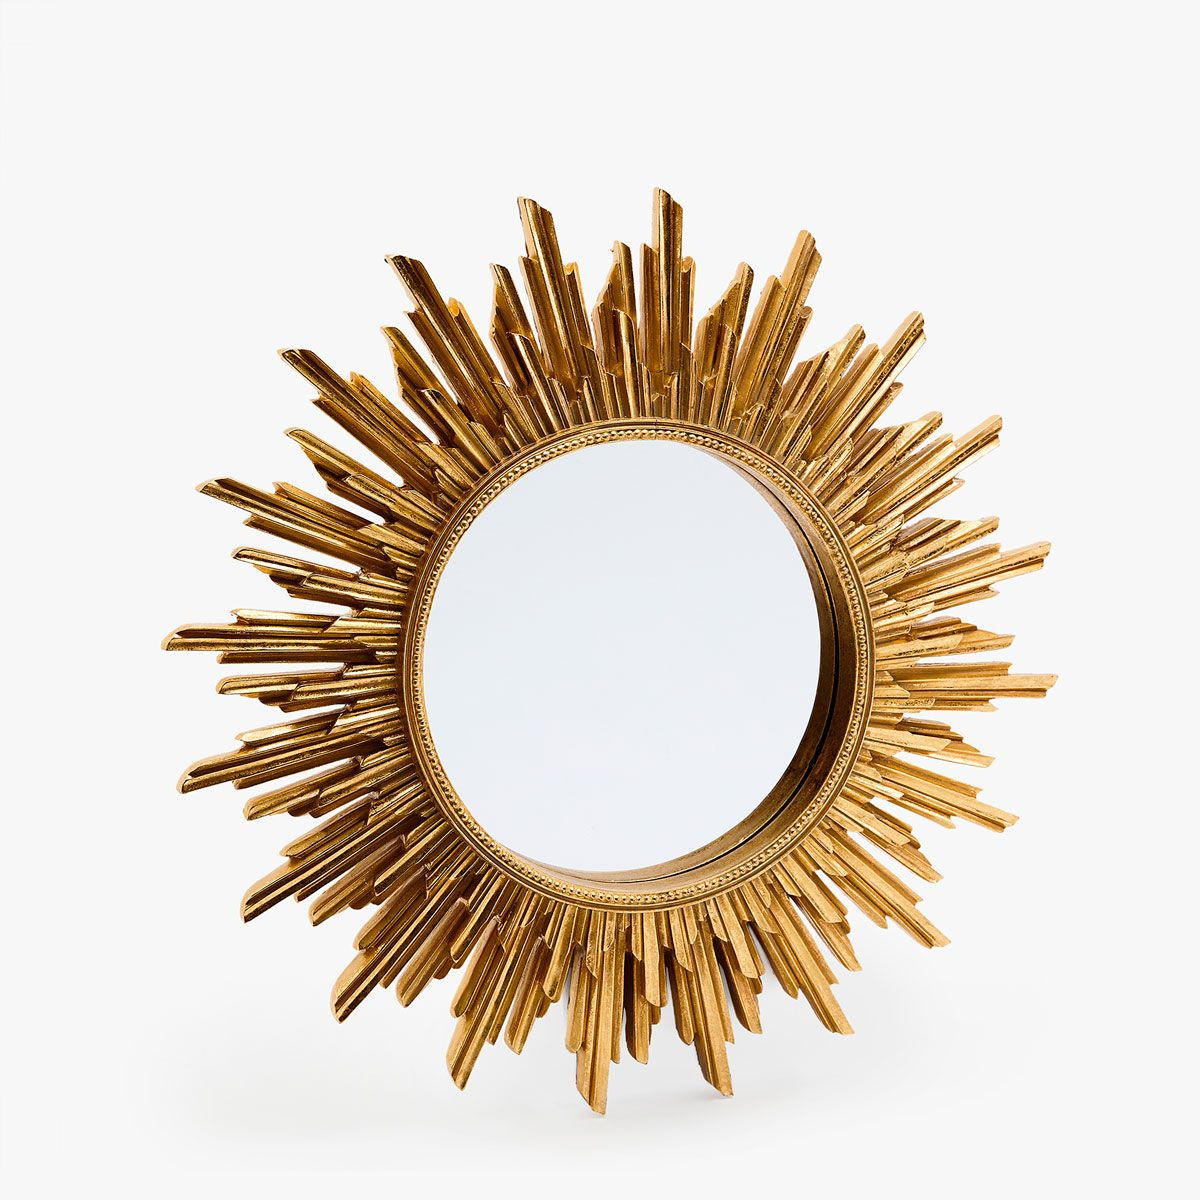 Image 1 Of The Product Sun Shaped Mirror | Zara Home Within Sun Shaped Wall Mirrors (Image 12 of 20)